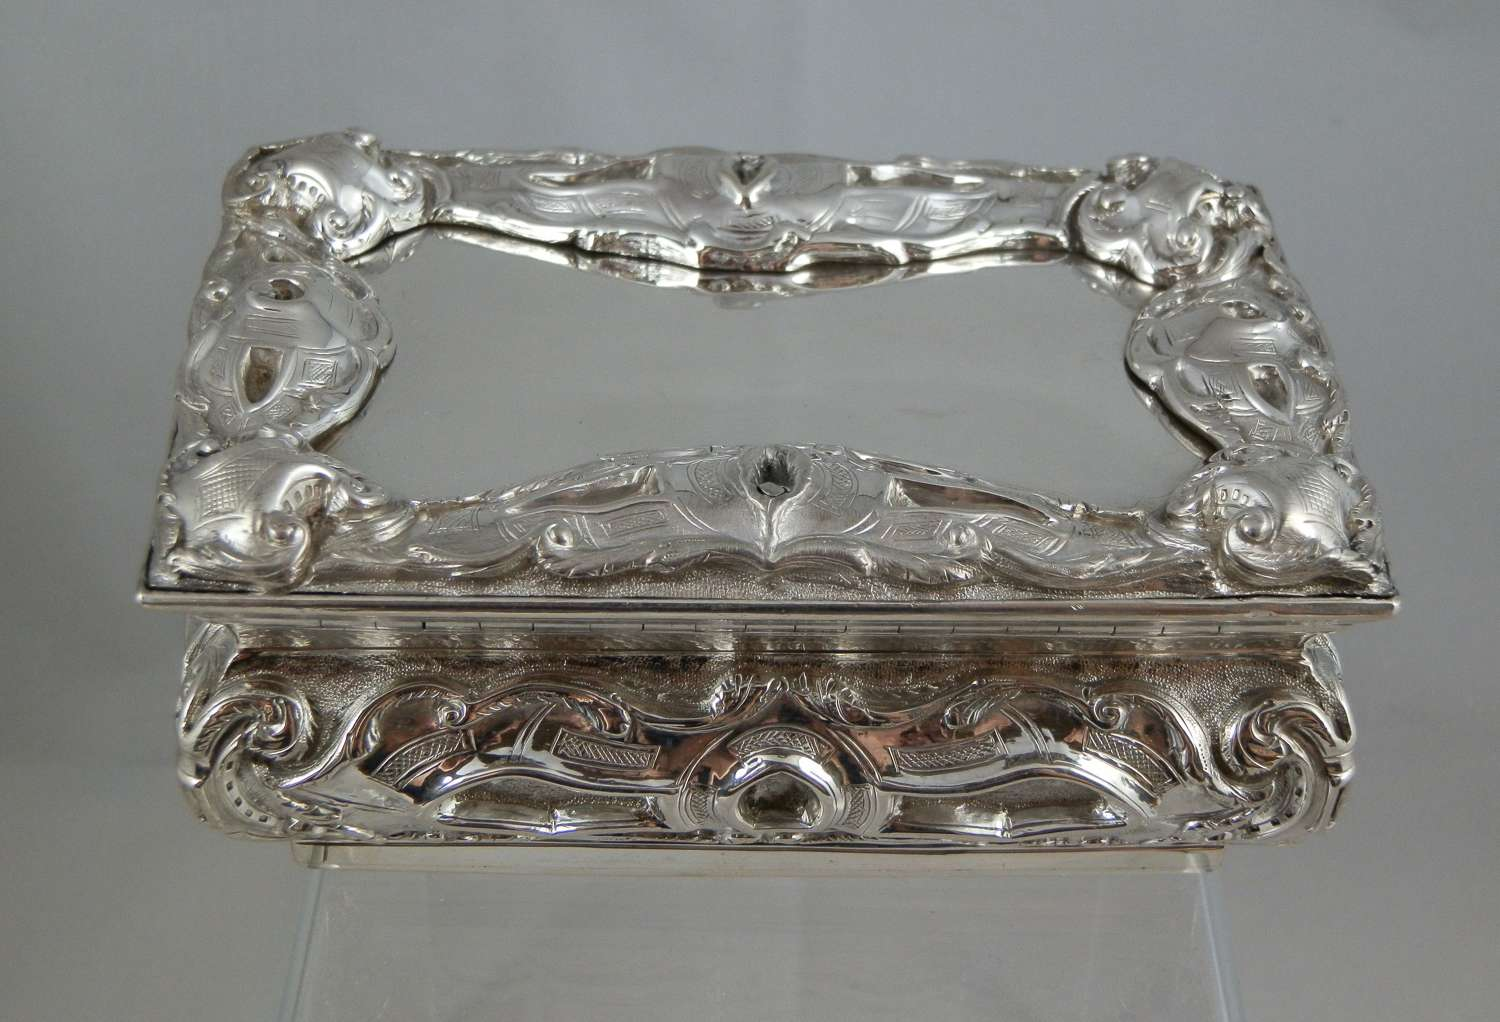 A very large Victorian silver table snuff box by Aston & Son 1858